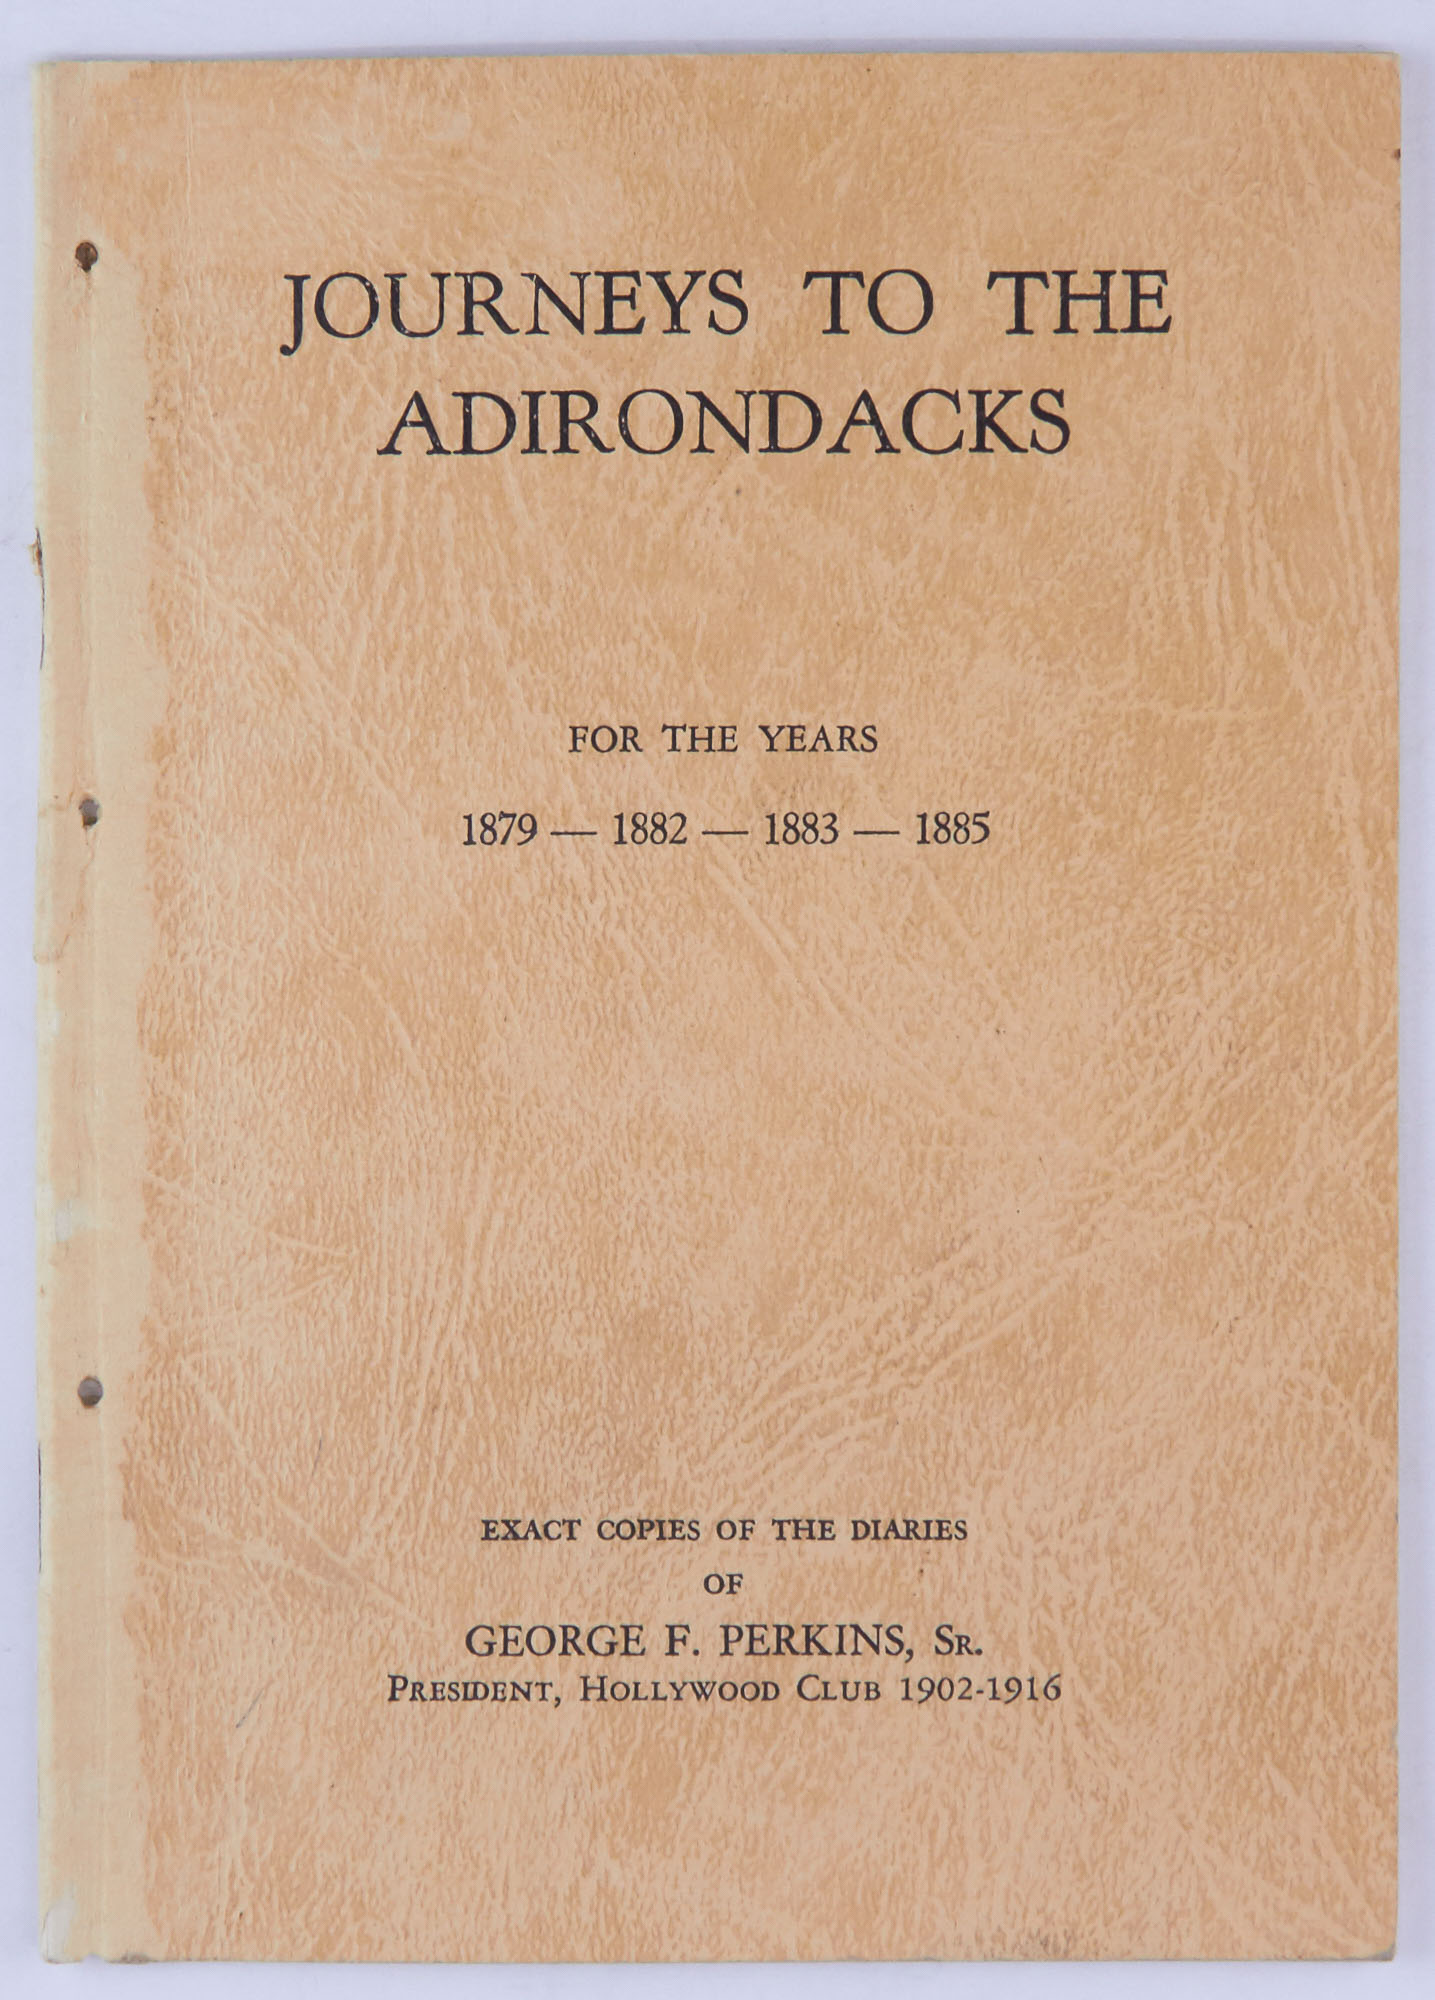 Lot image - [ADIRONDACKS]  PERKINS, GEORGE F. Journeys to the Adirondacks for the years 1879 - 1882 - 1883 - 1885.